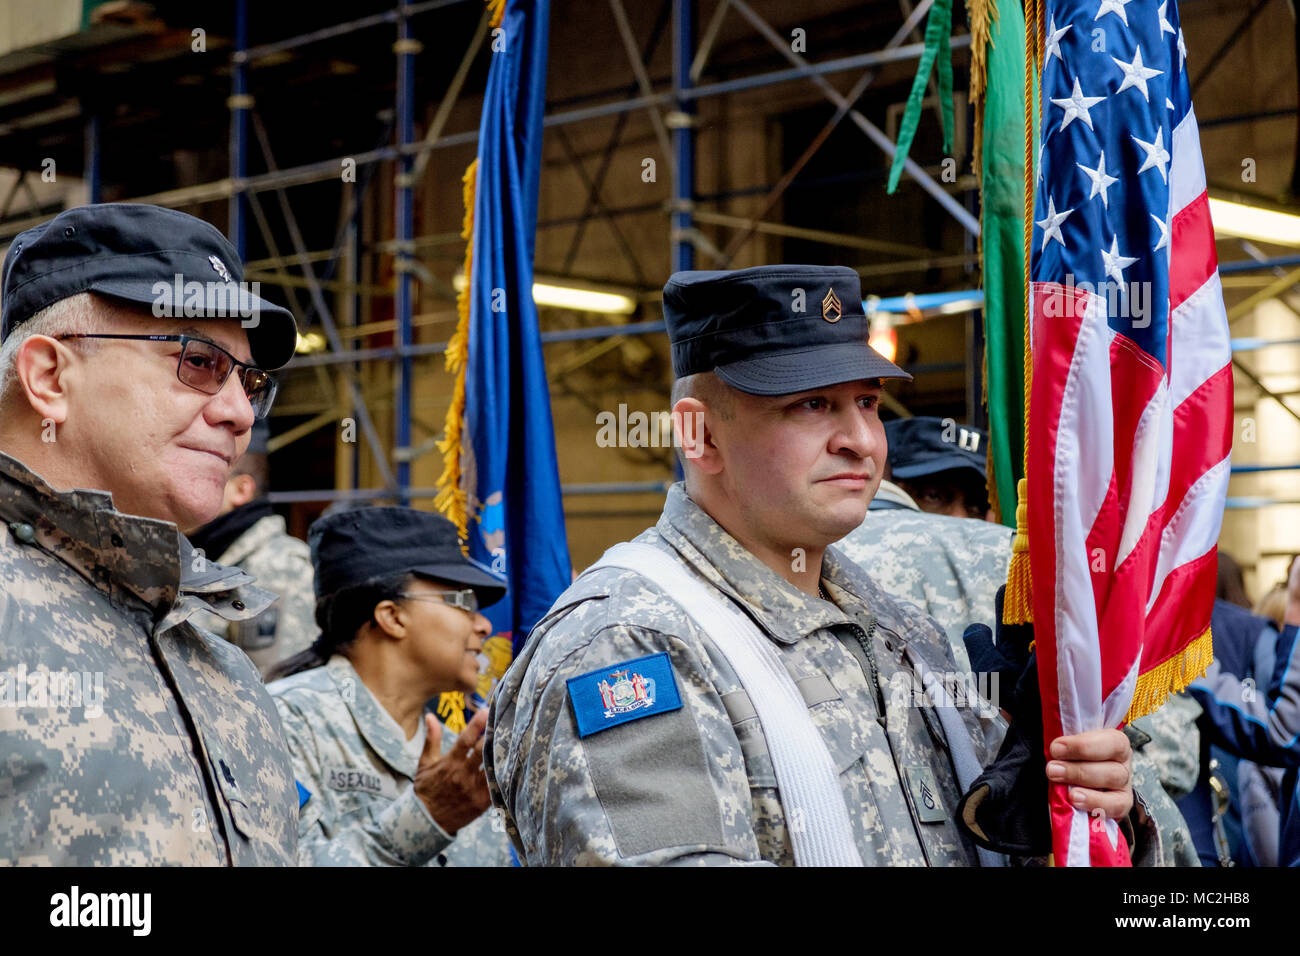 Two men march with 88th Brigade, New York Guard  in St. Patrick's Day Parade, New York, 2018. One holds American flag. Uniforms, blue caps. Close up. - Stock Image